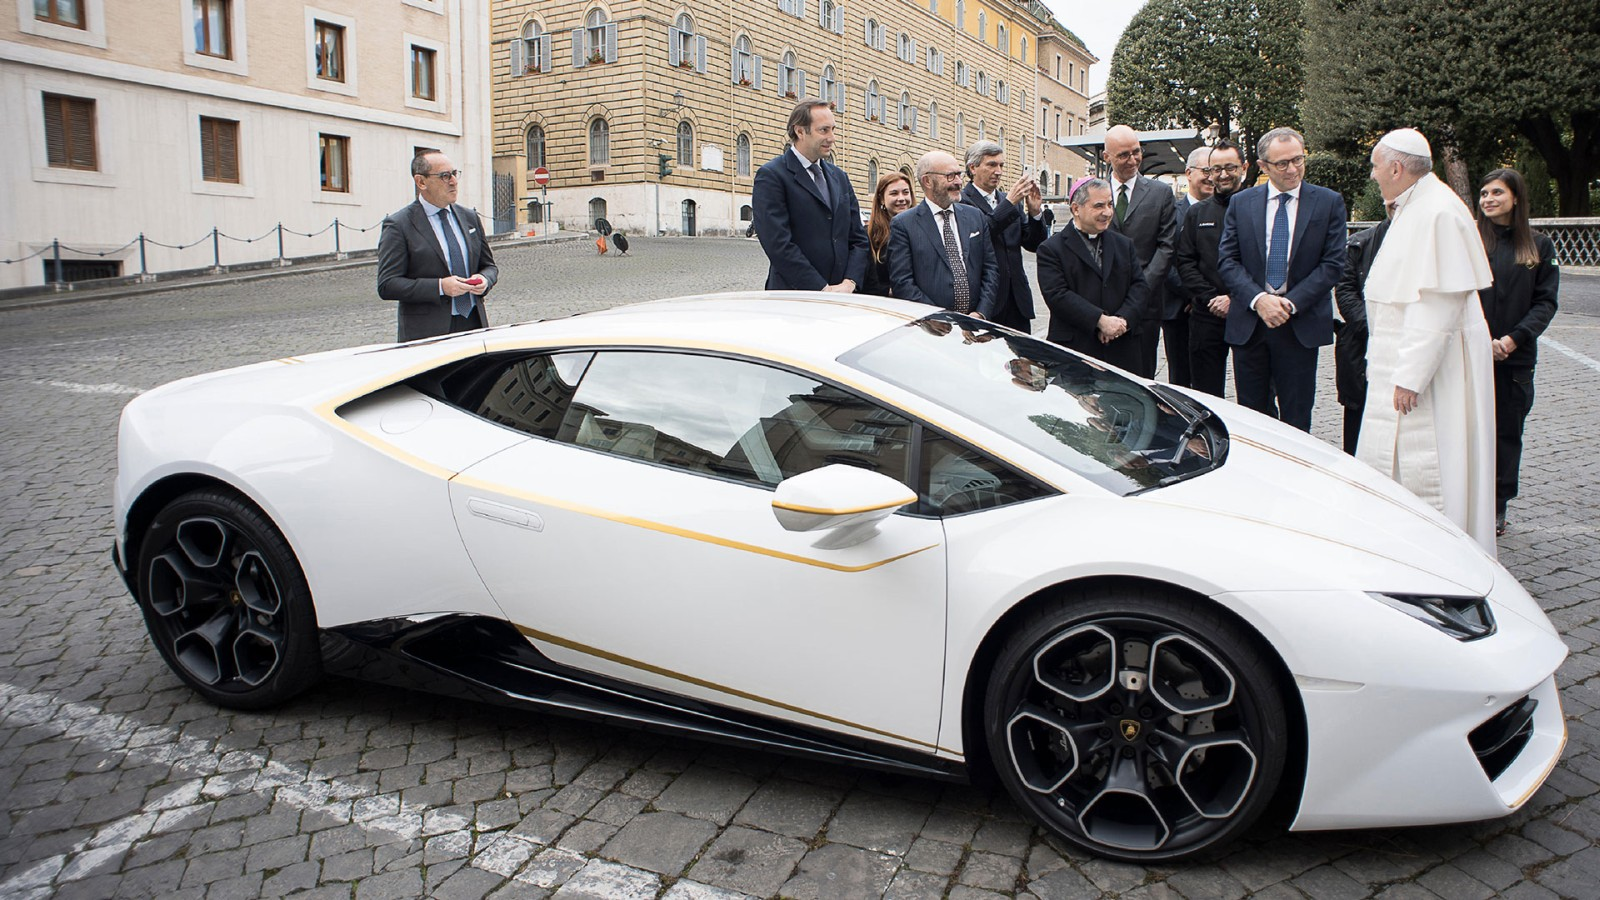 Pope gets Lamborghini to auction for charity